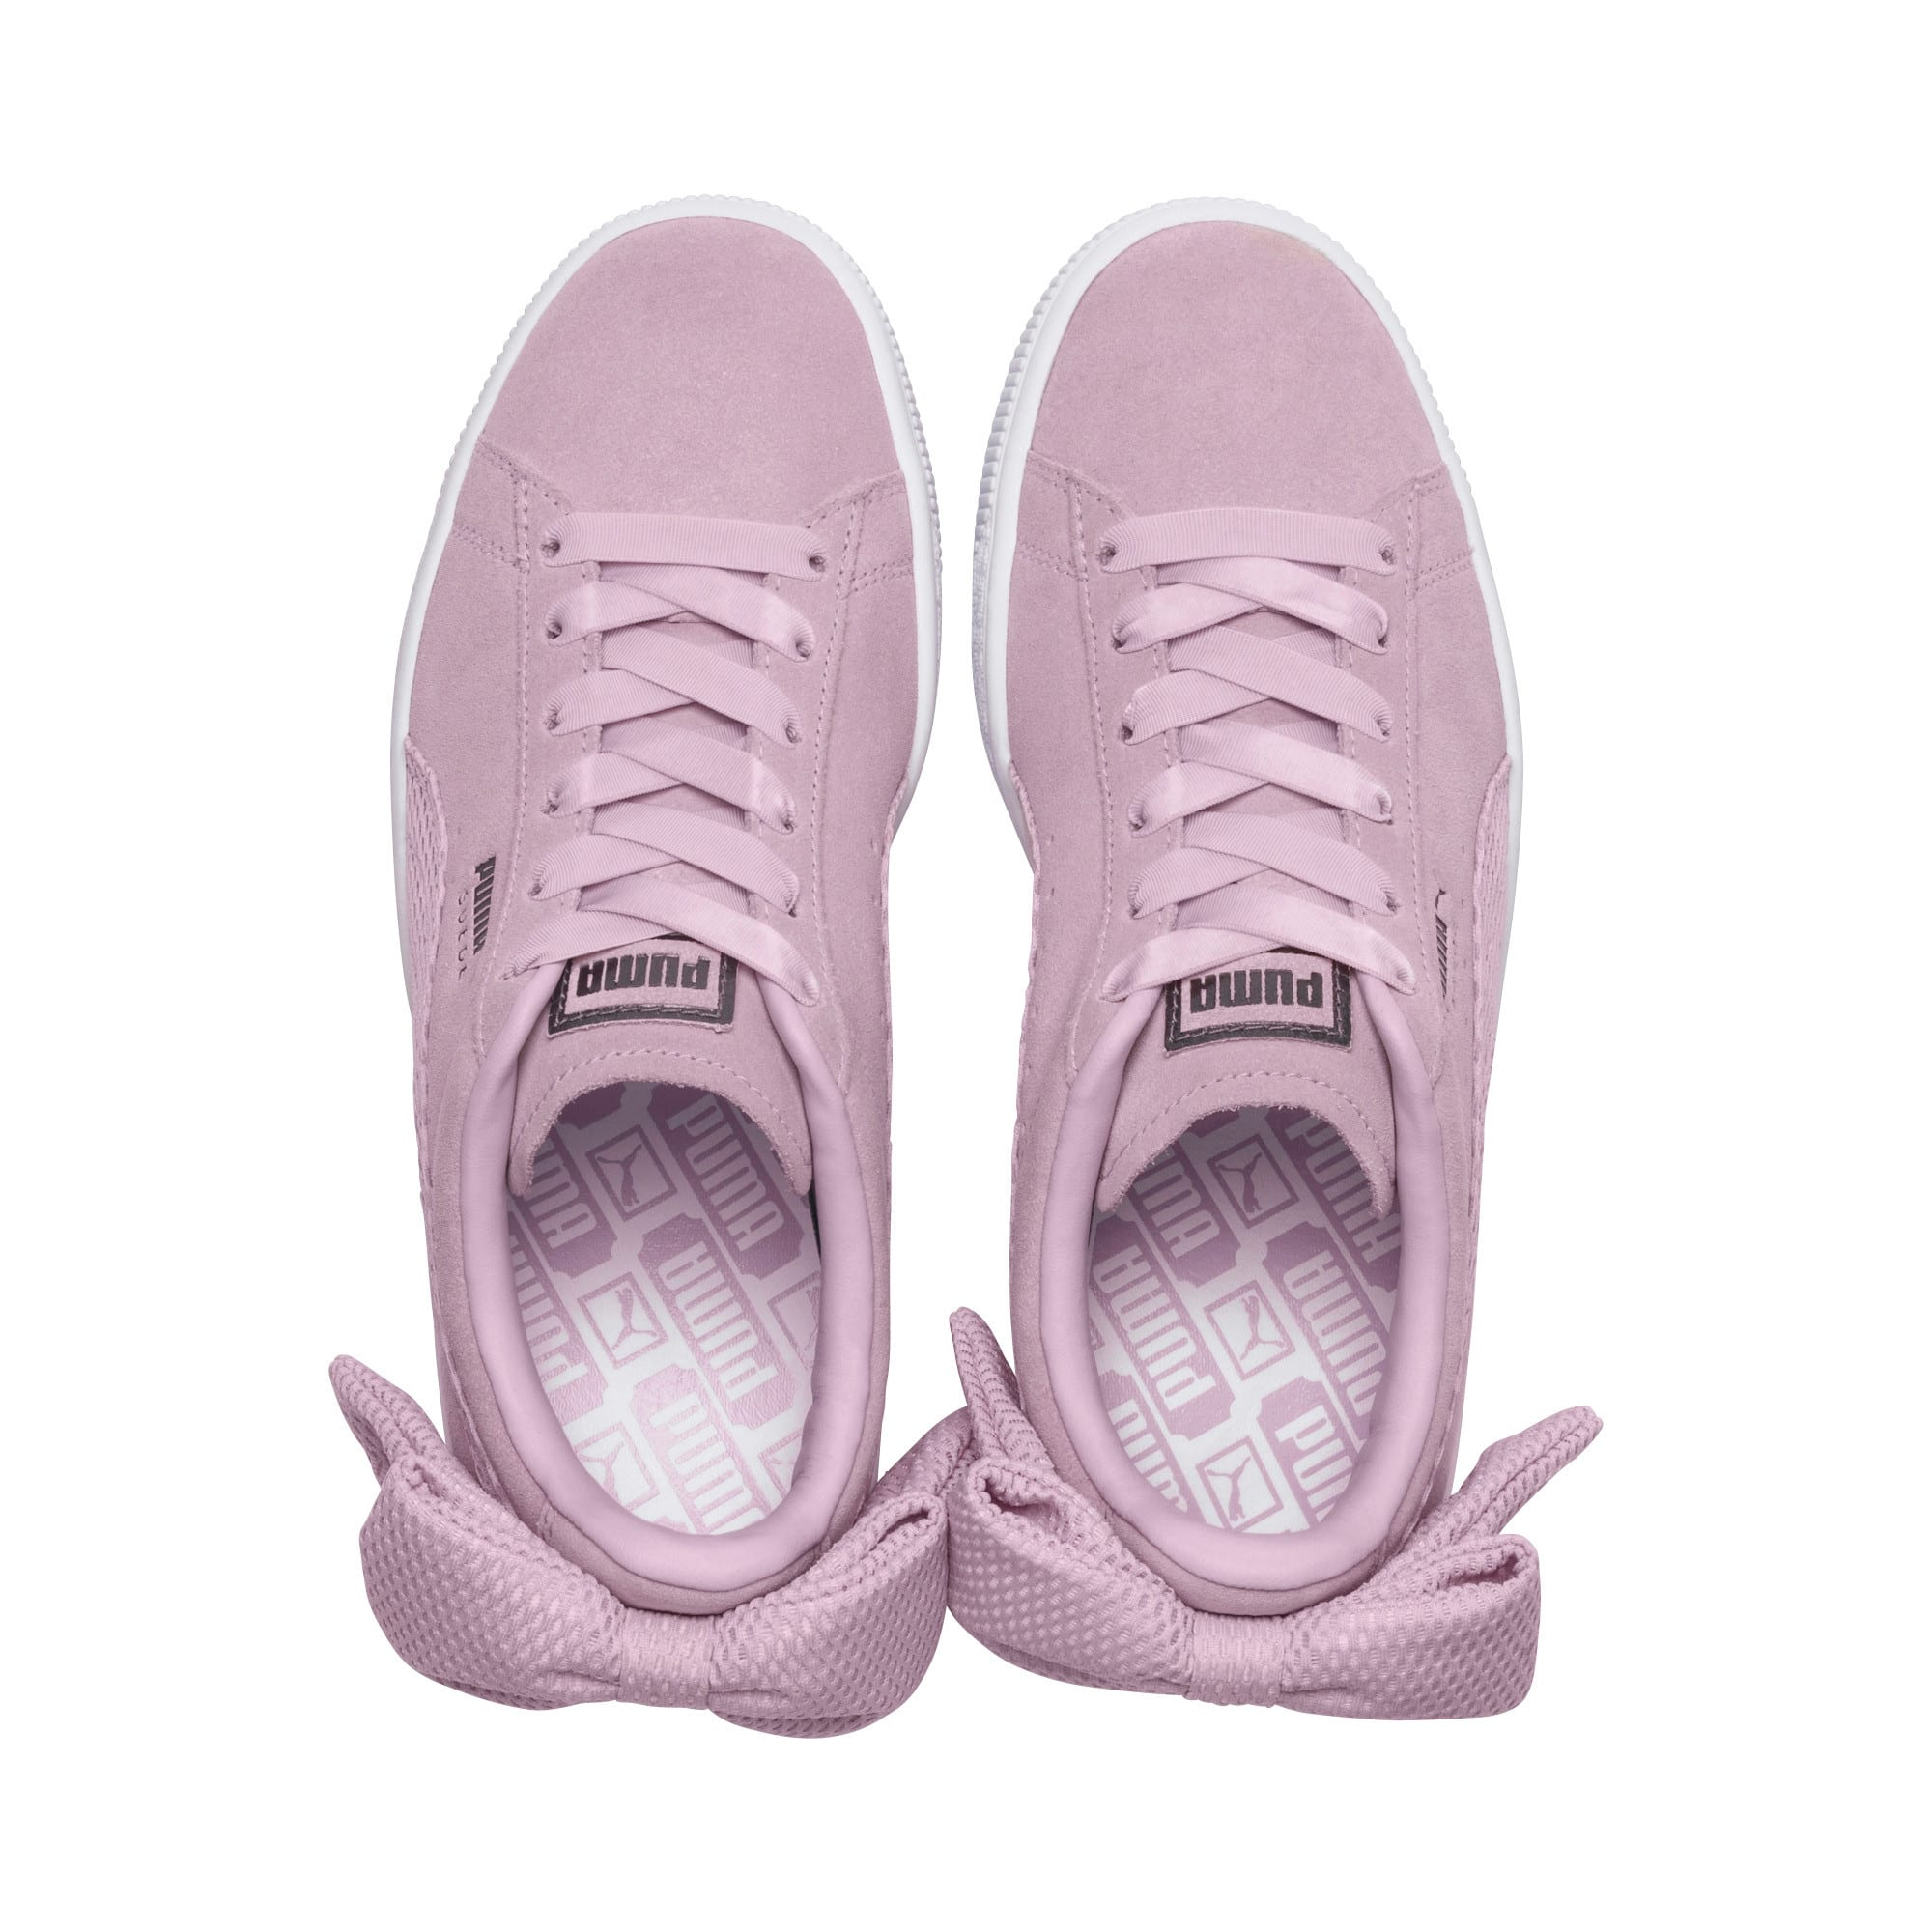 Thumbnail 6 of Suede Bow Uprising Women's Sneakers, Winsome Orchid-Puma White, medium